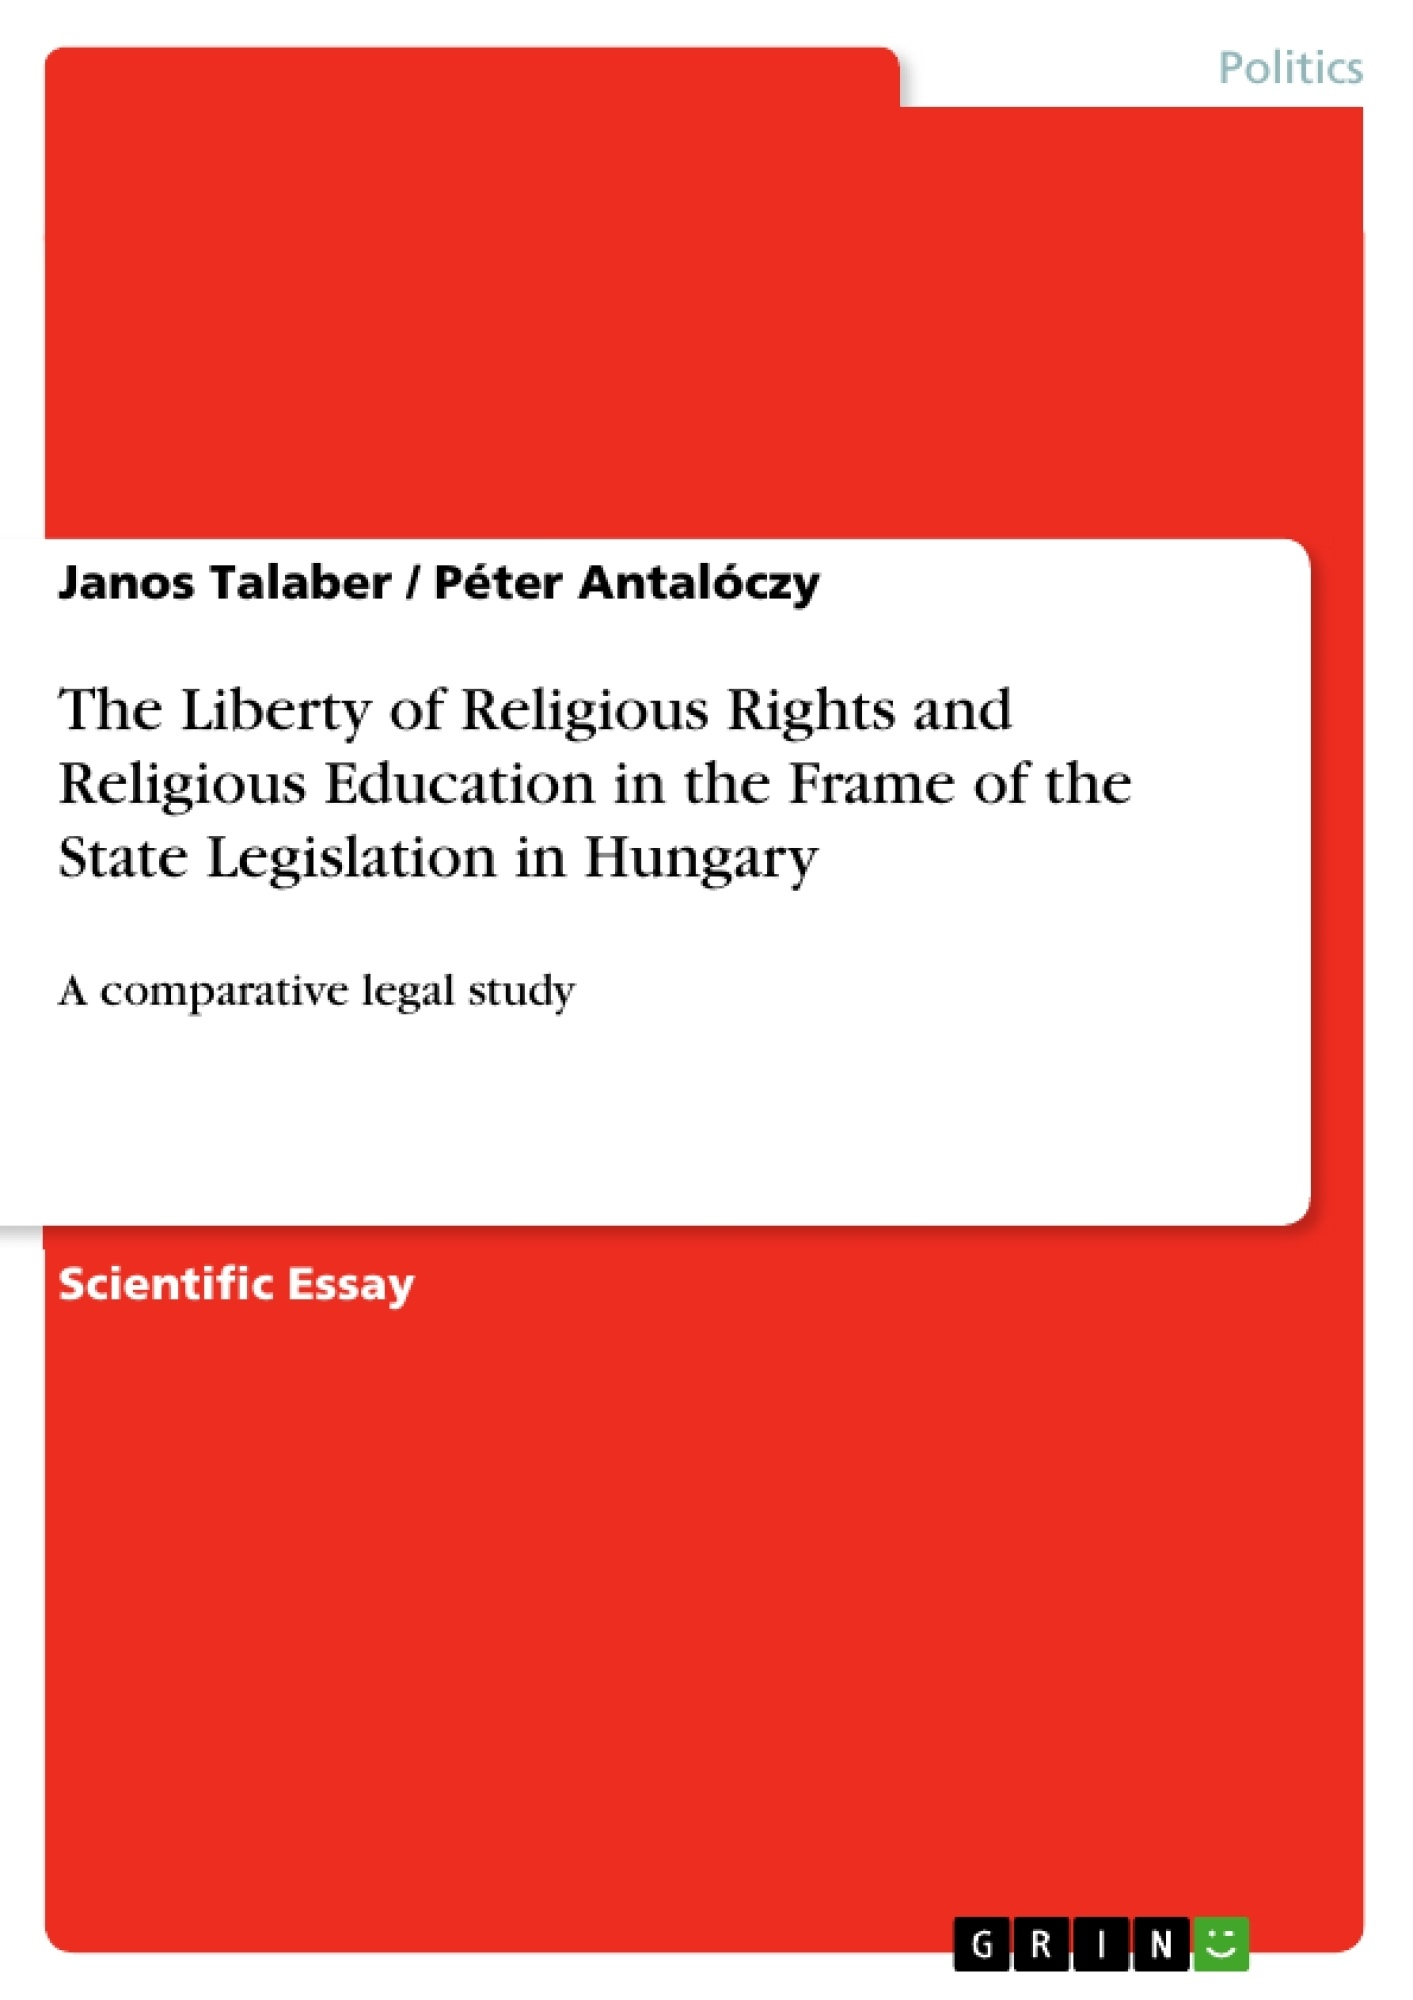 Title: The Liberty of Religious Rights and Religious Education in the Frame of the State Legislation in Hungary